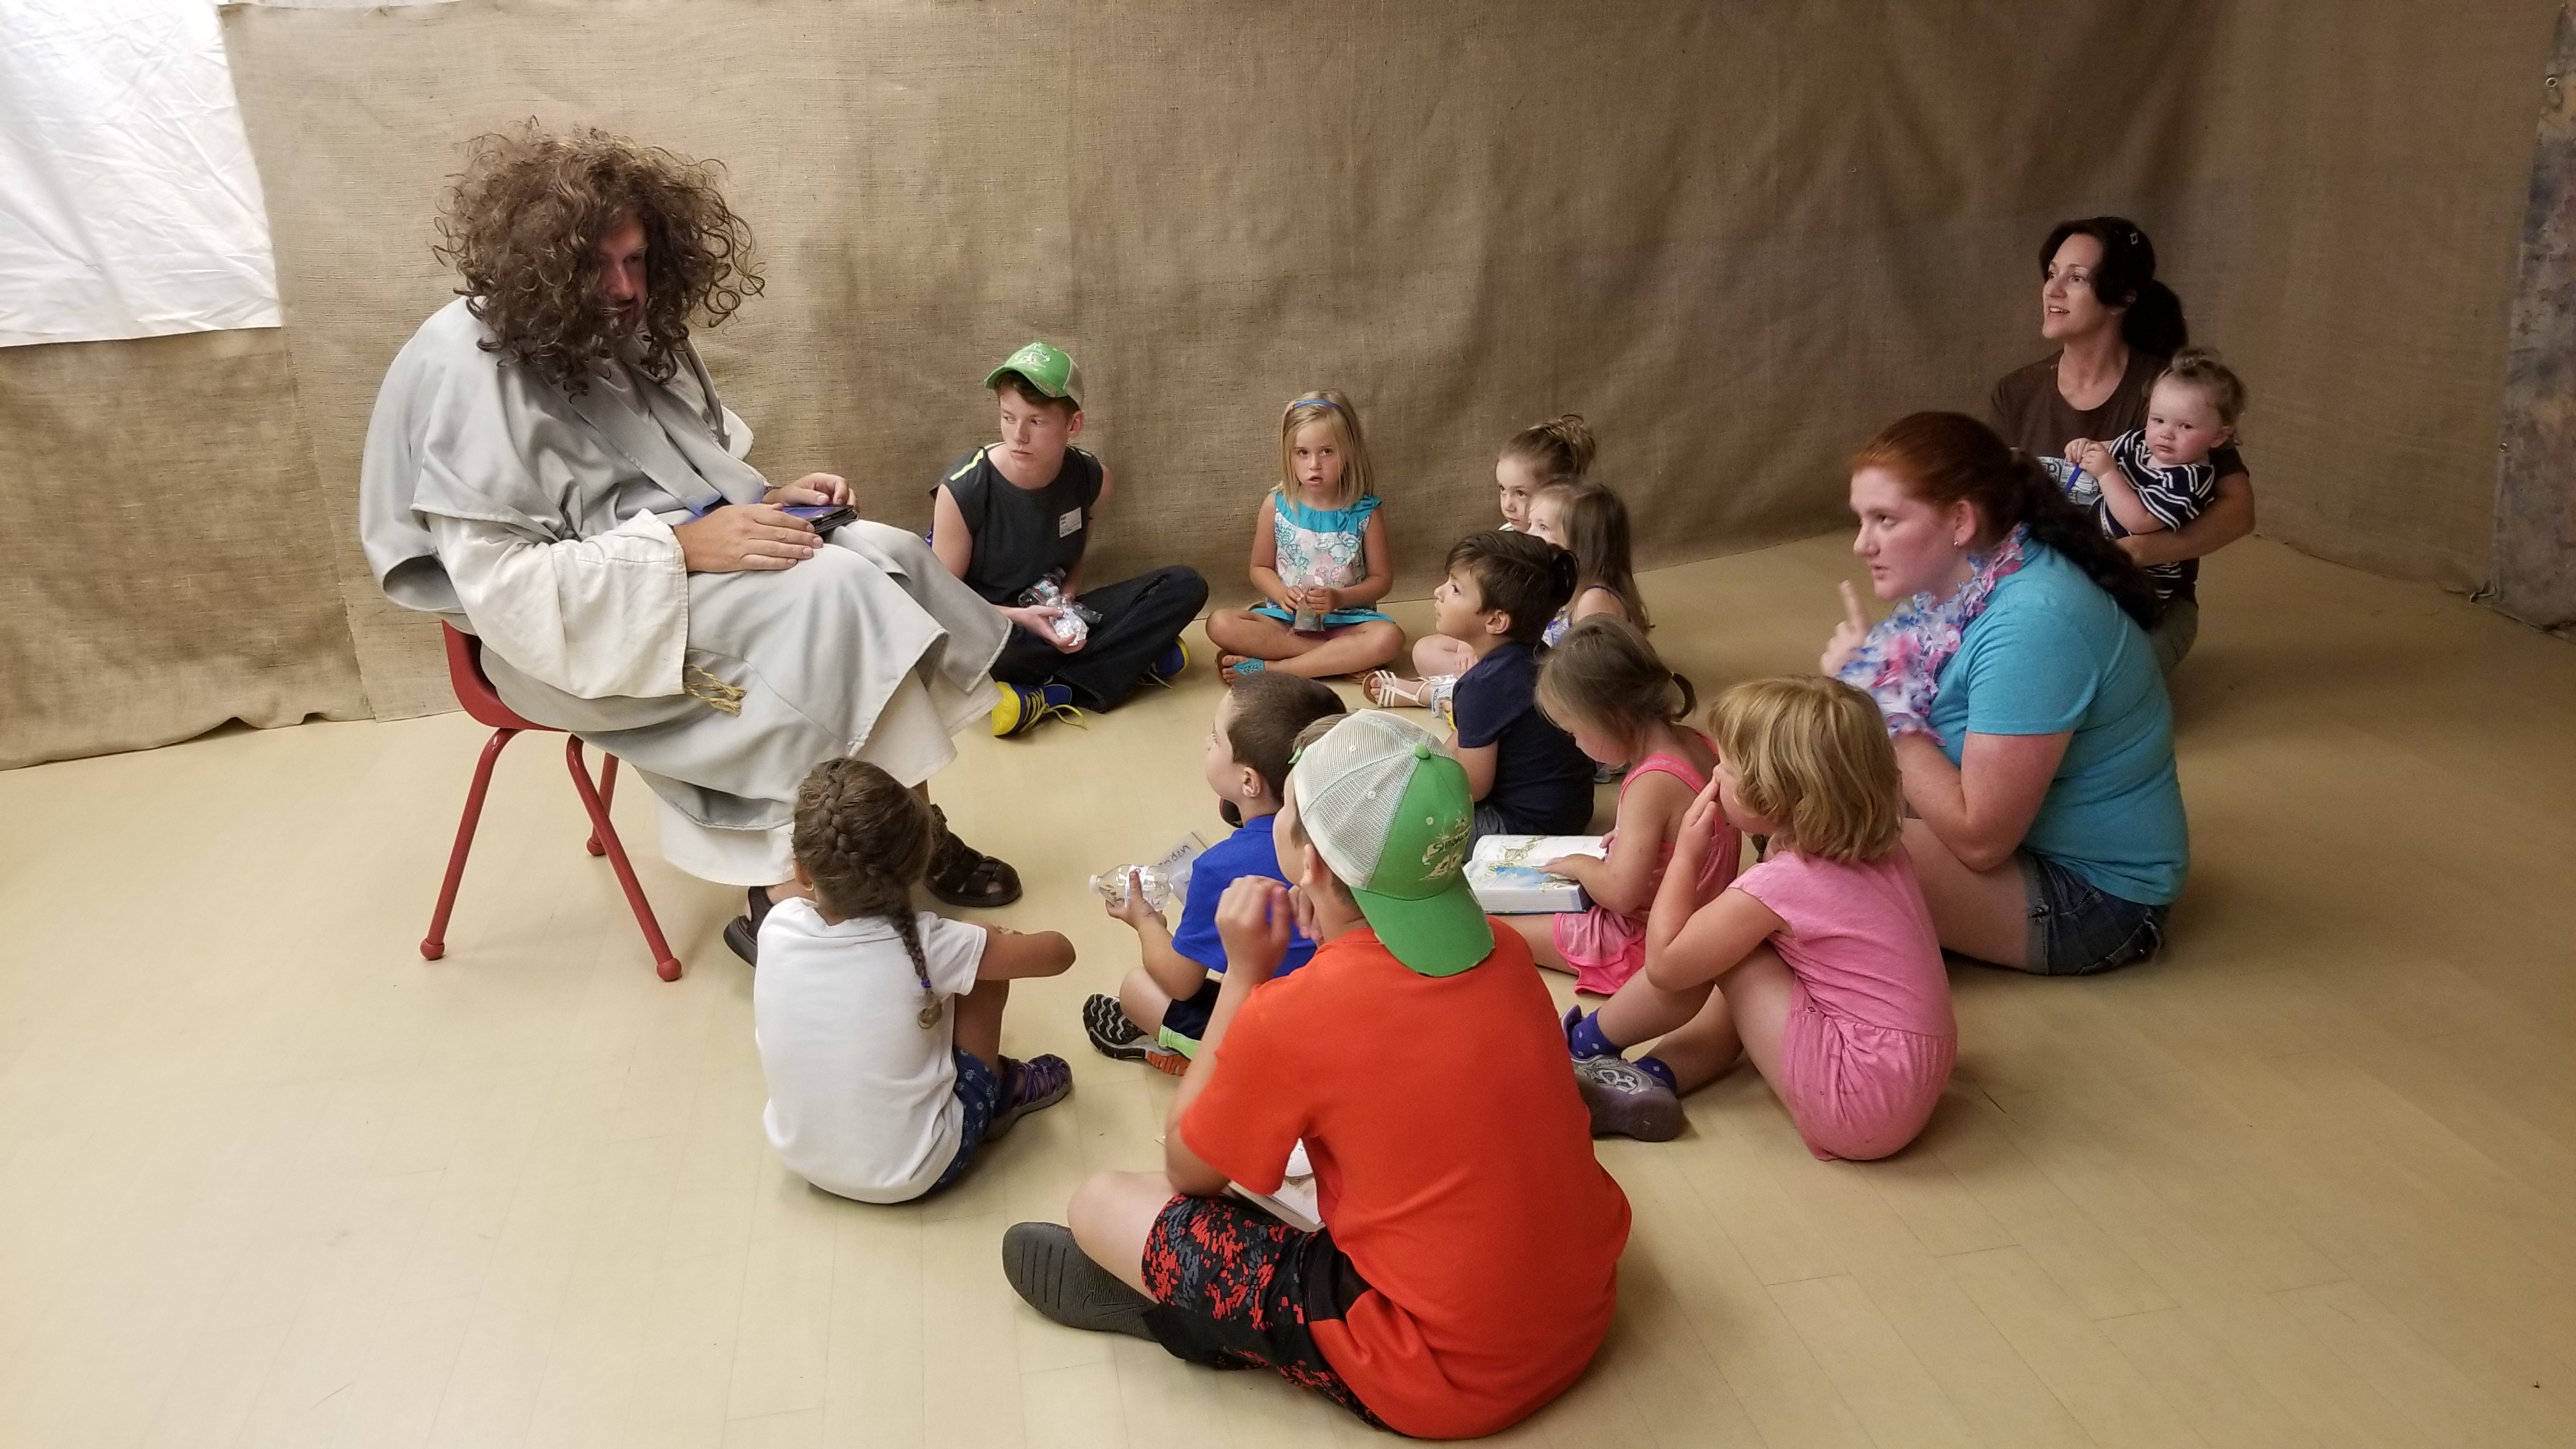 Thad (the big guy in the wig) is a good friend of mine, and I LOVED watching him teaching the really little kids. And that outfit!!!